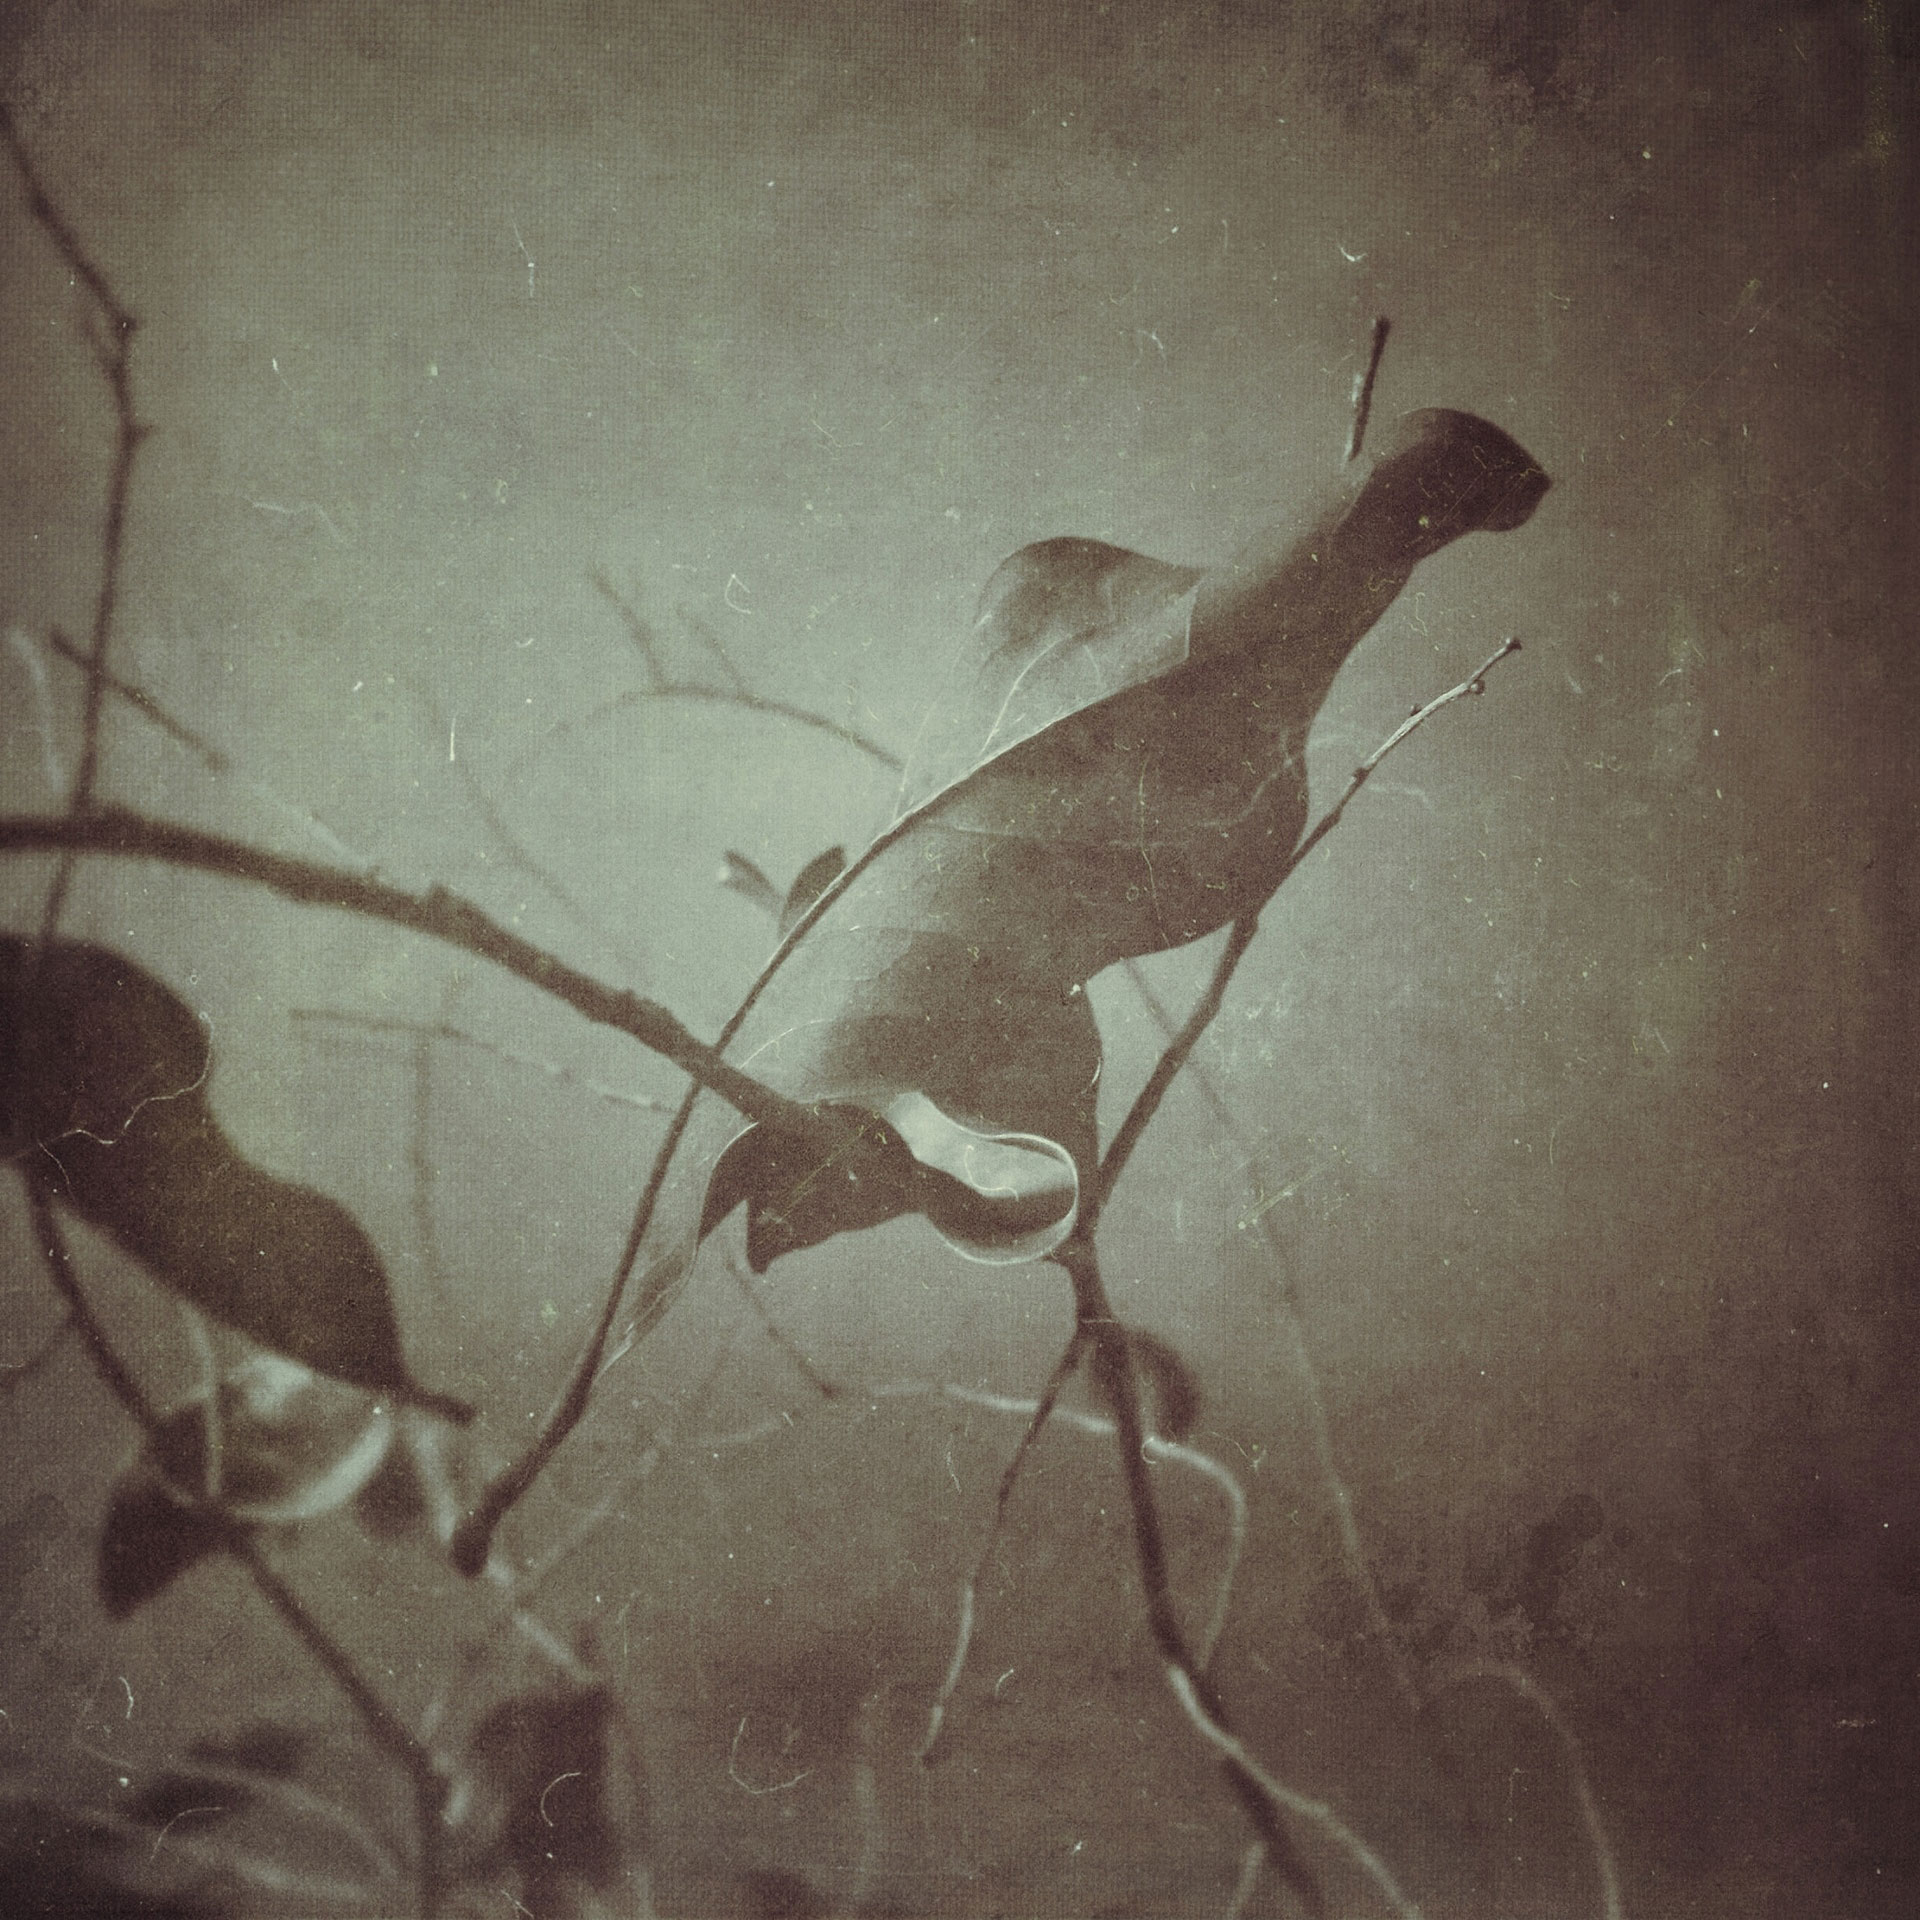 Josephine_Cardin_article_10